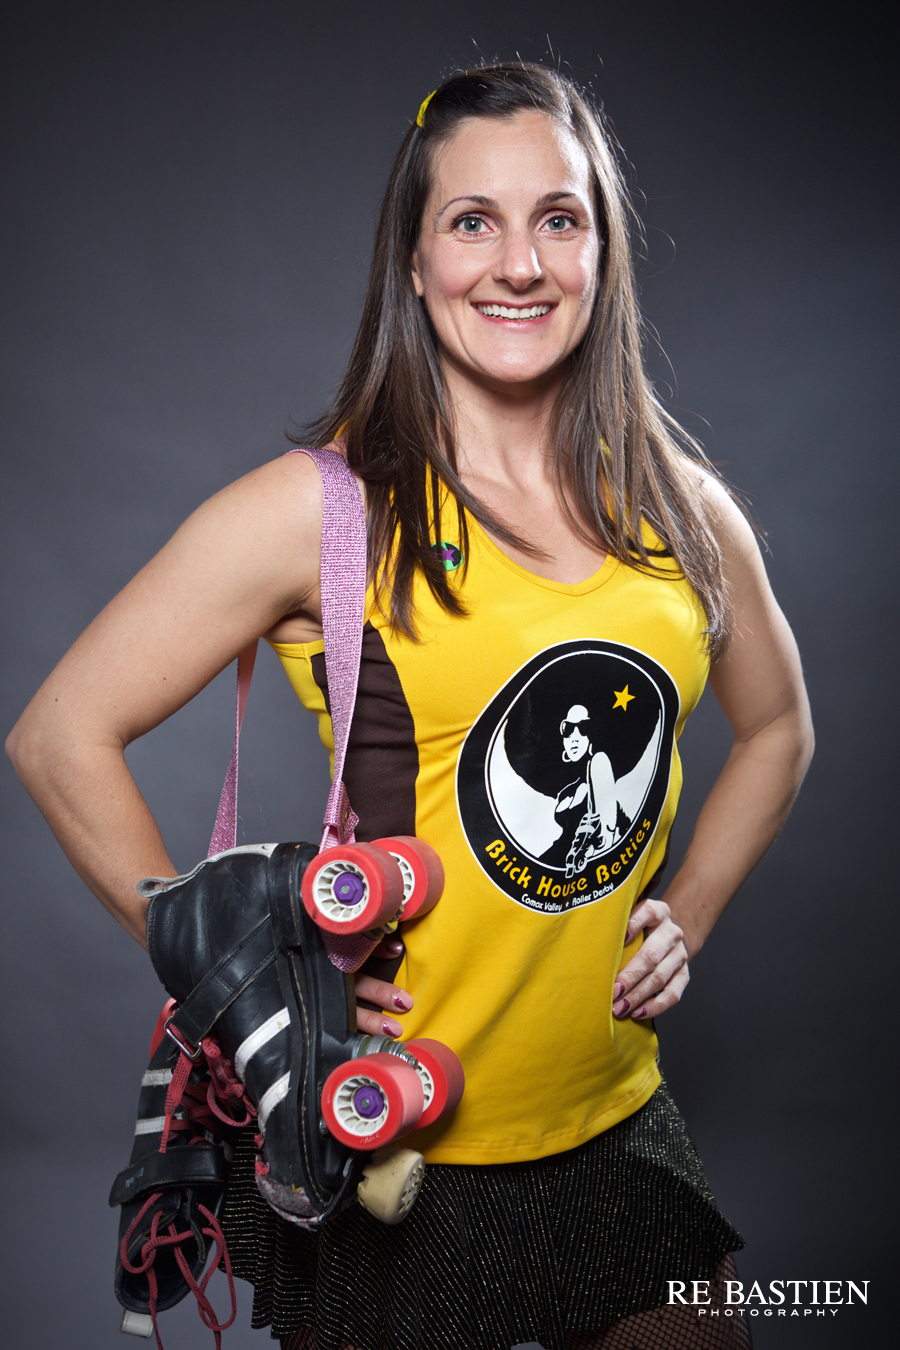 Roller Derby skater portraits by Re Bastien Photography